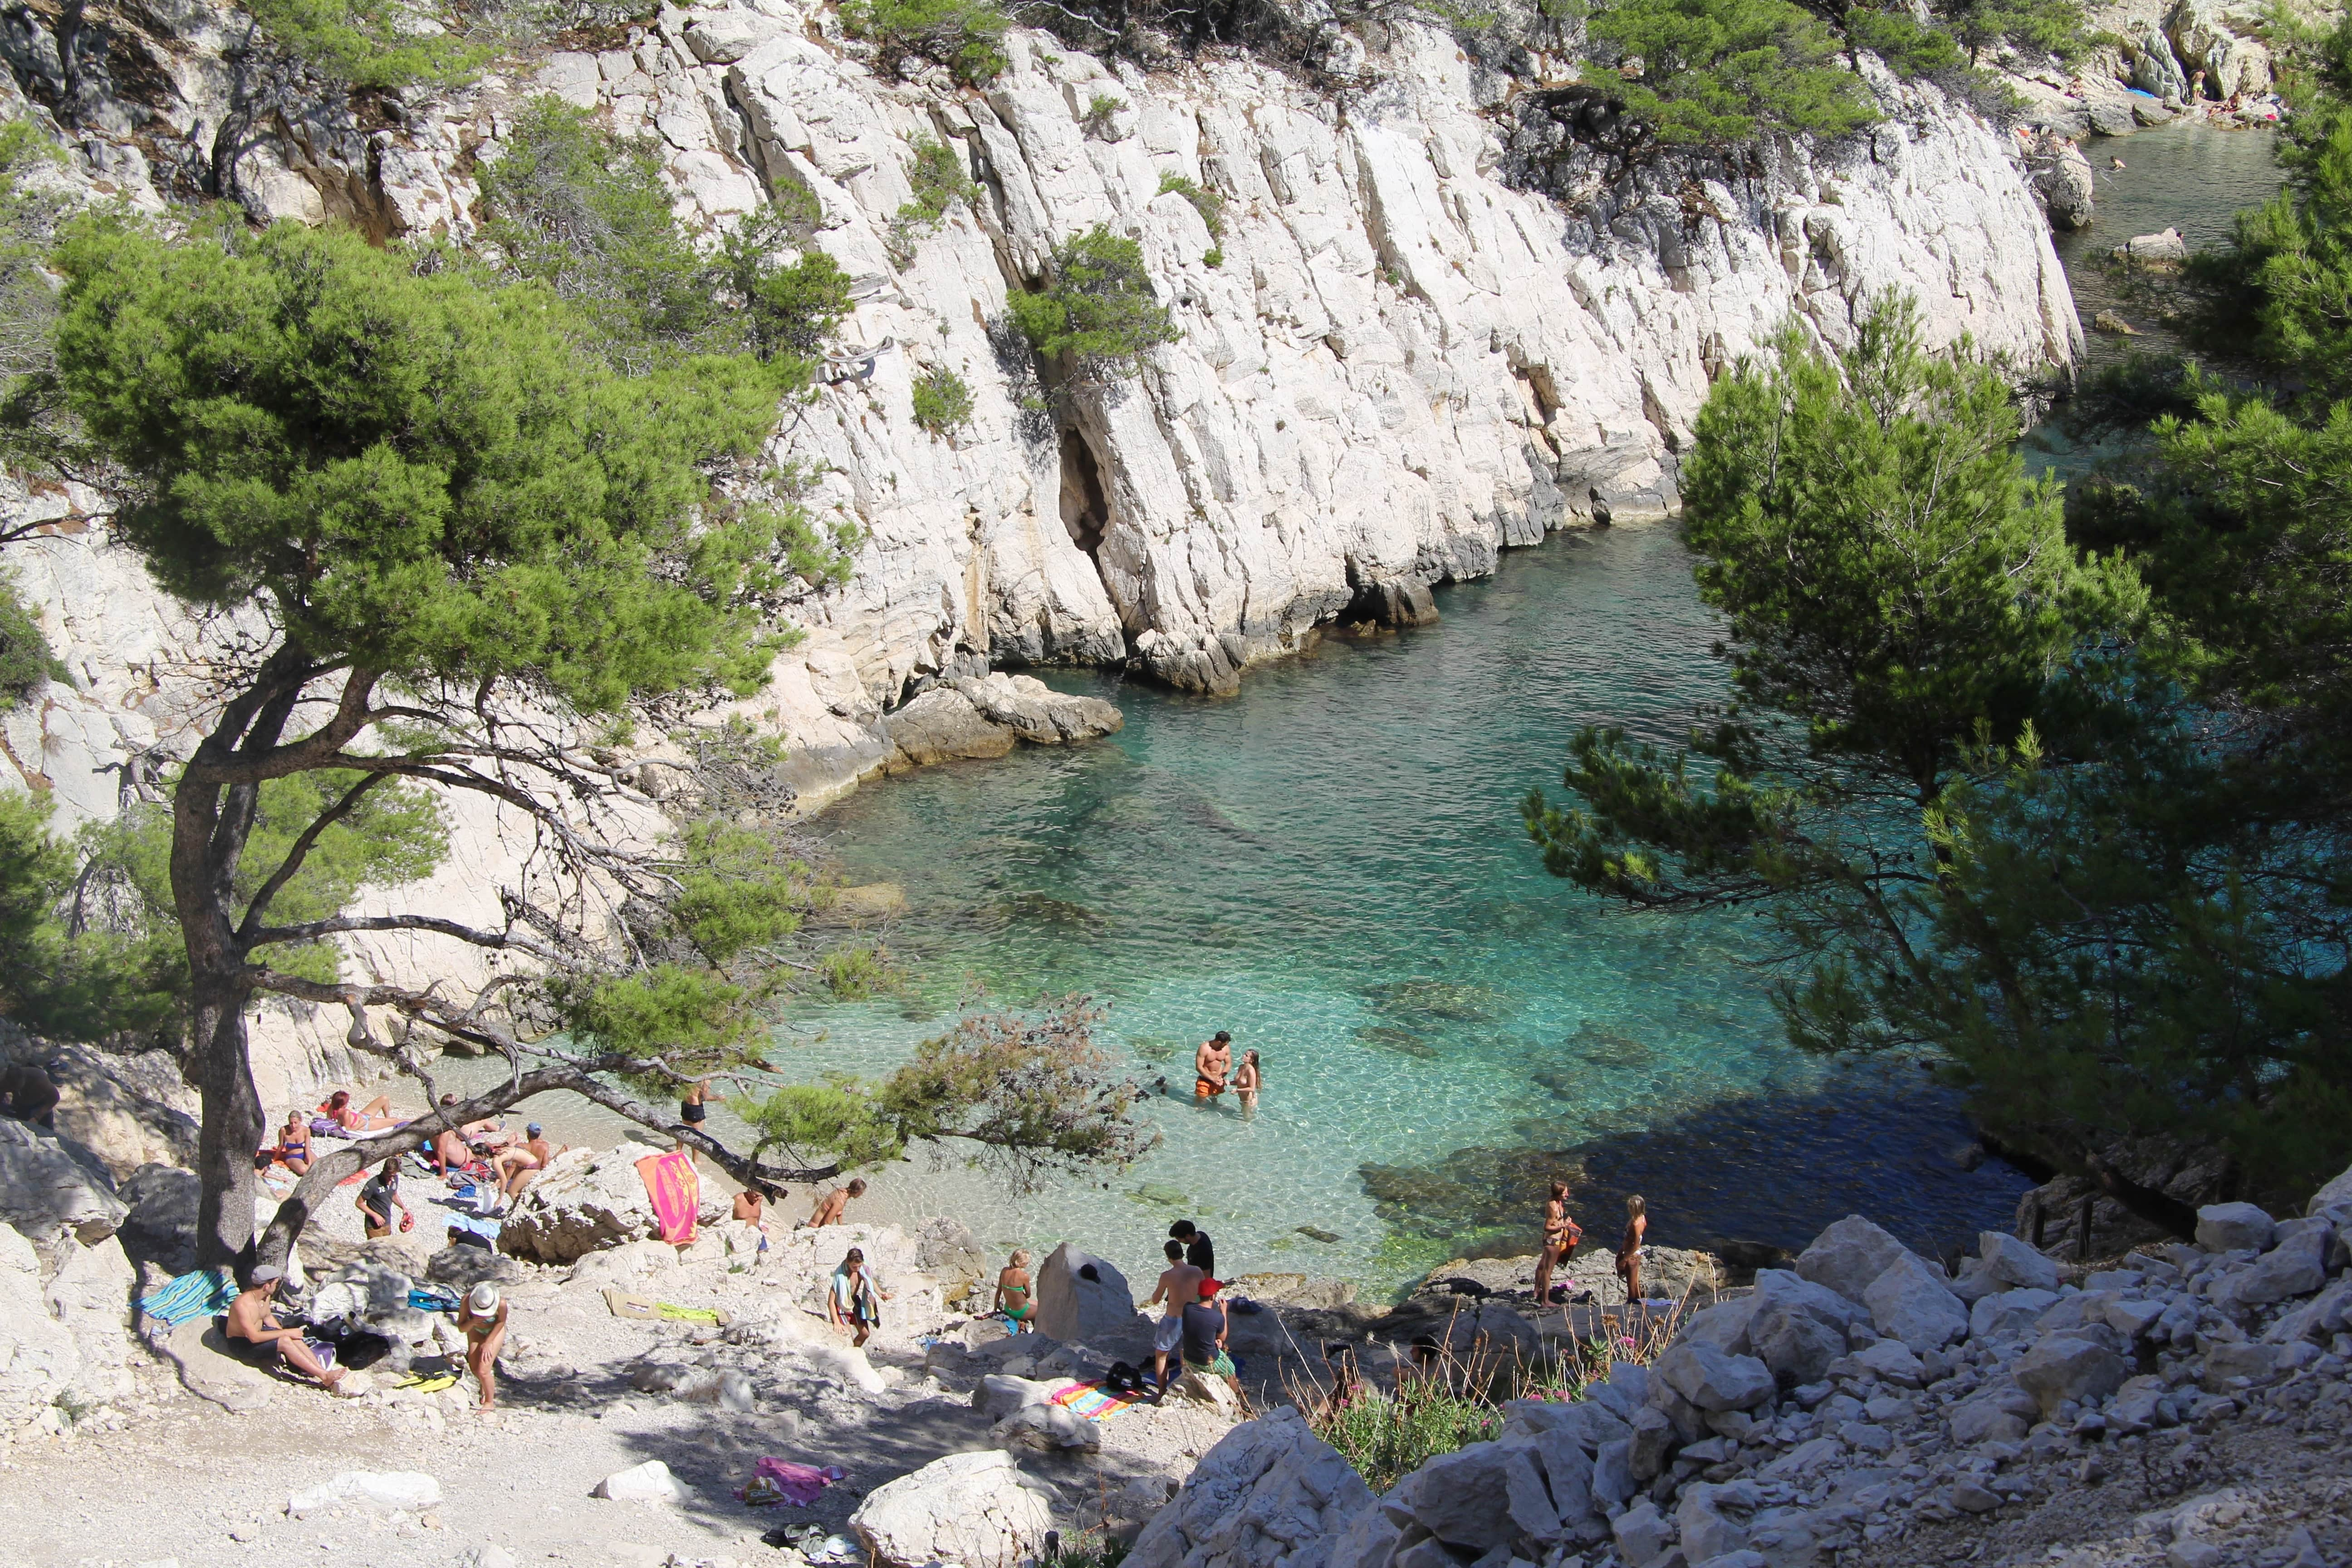 Calanques · hiking trip